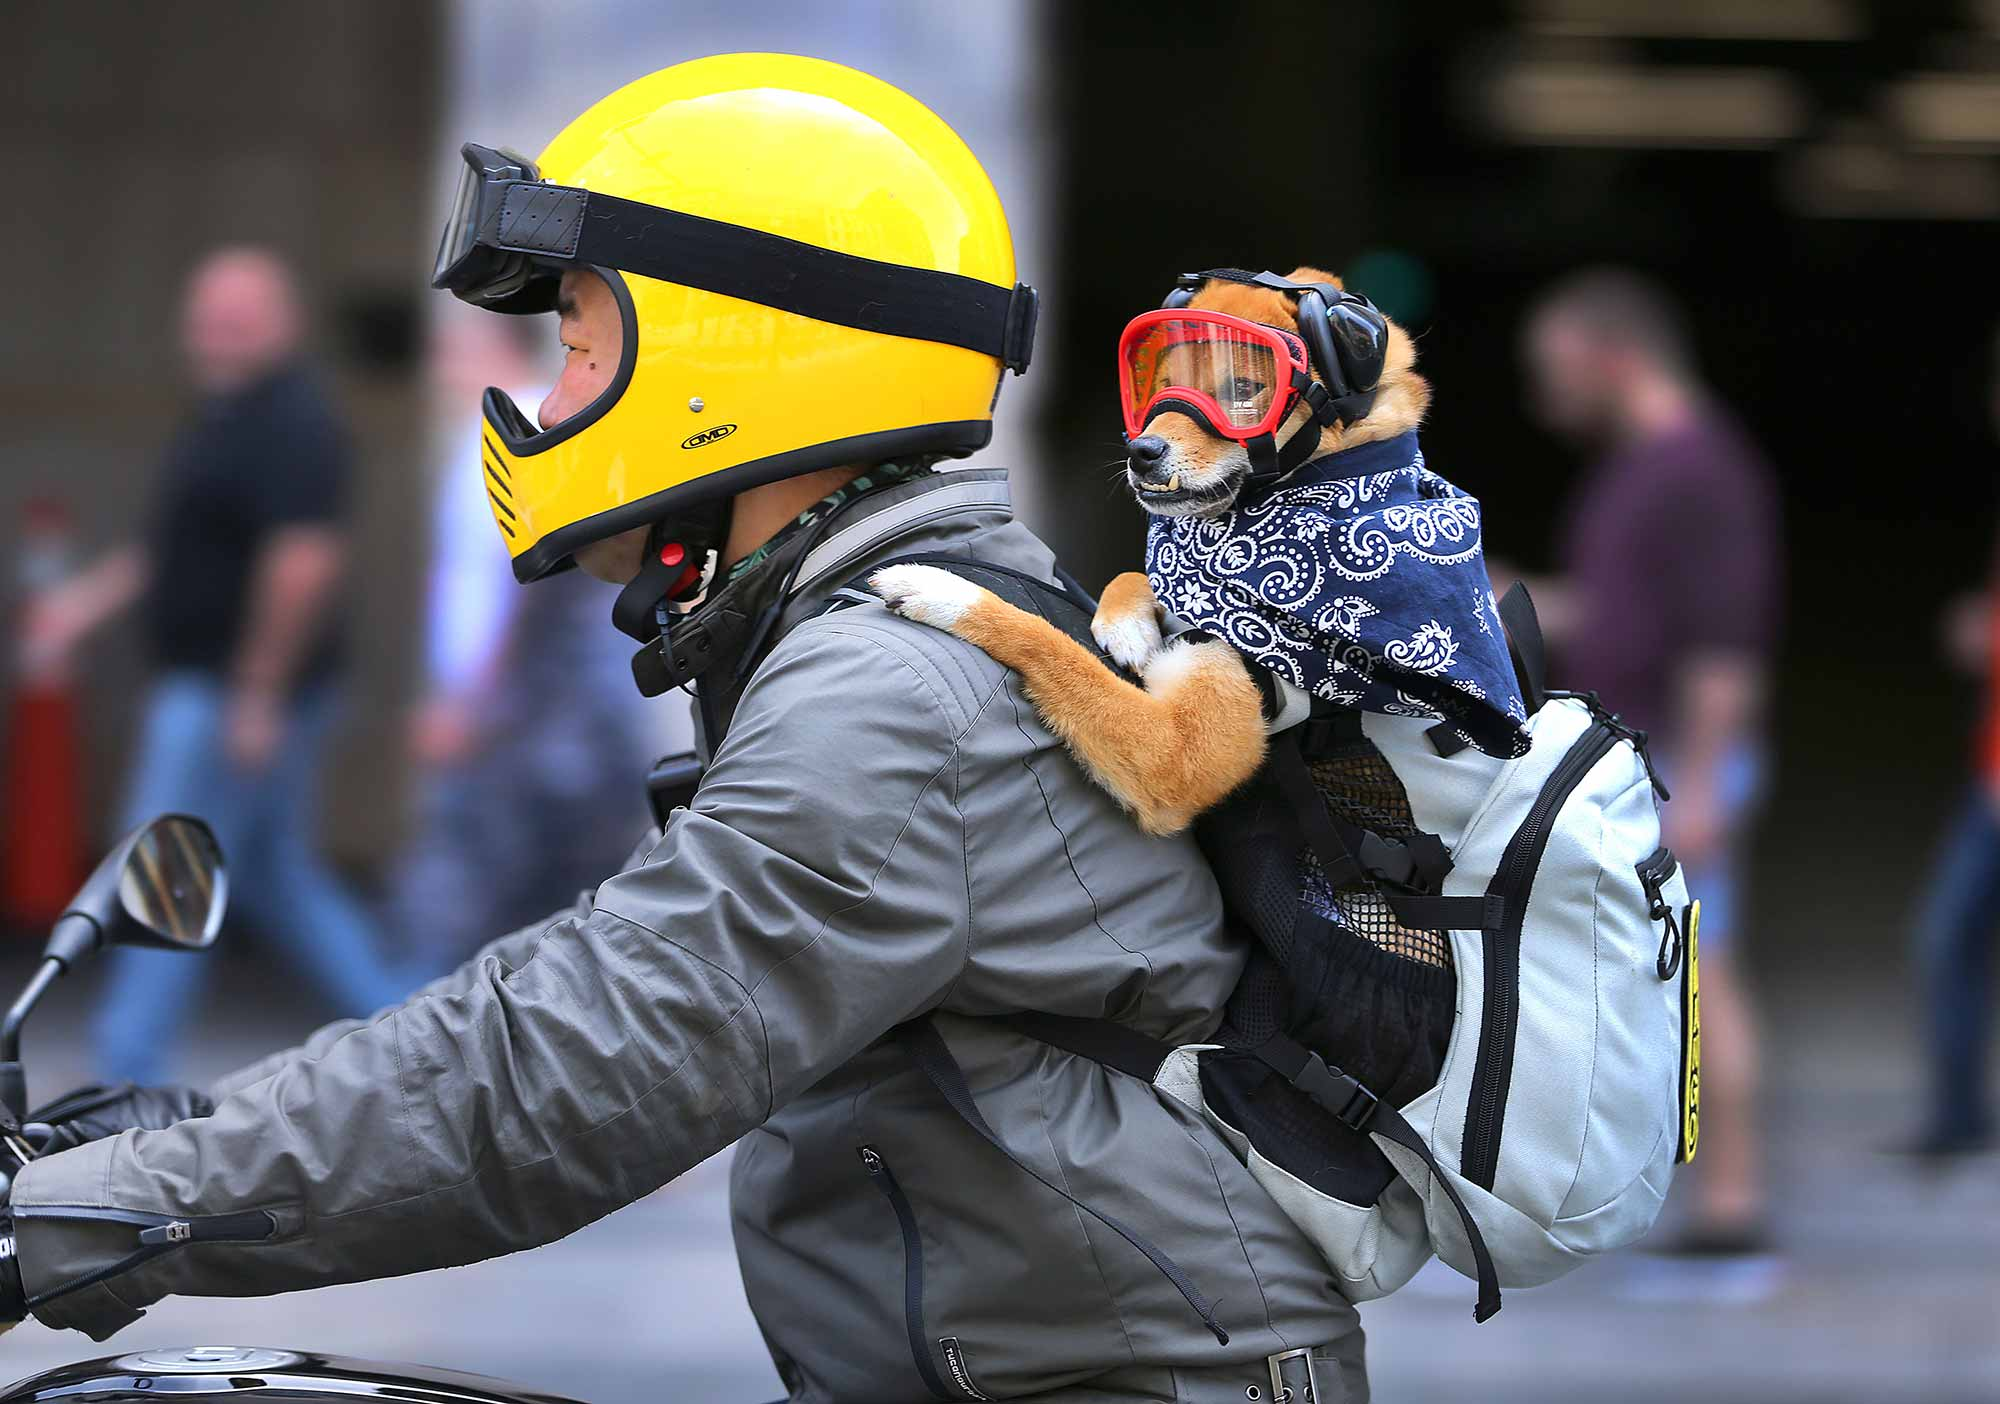 dog in backpack riding a motorcycle